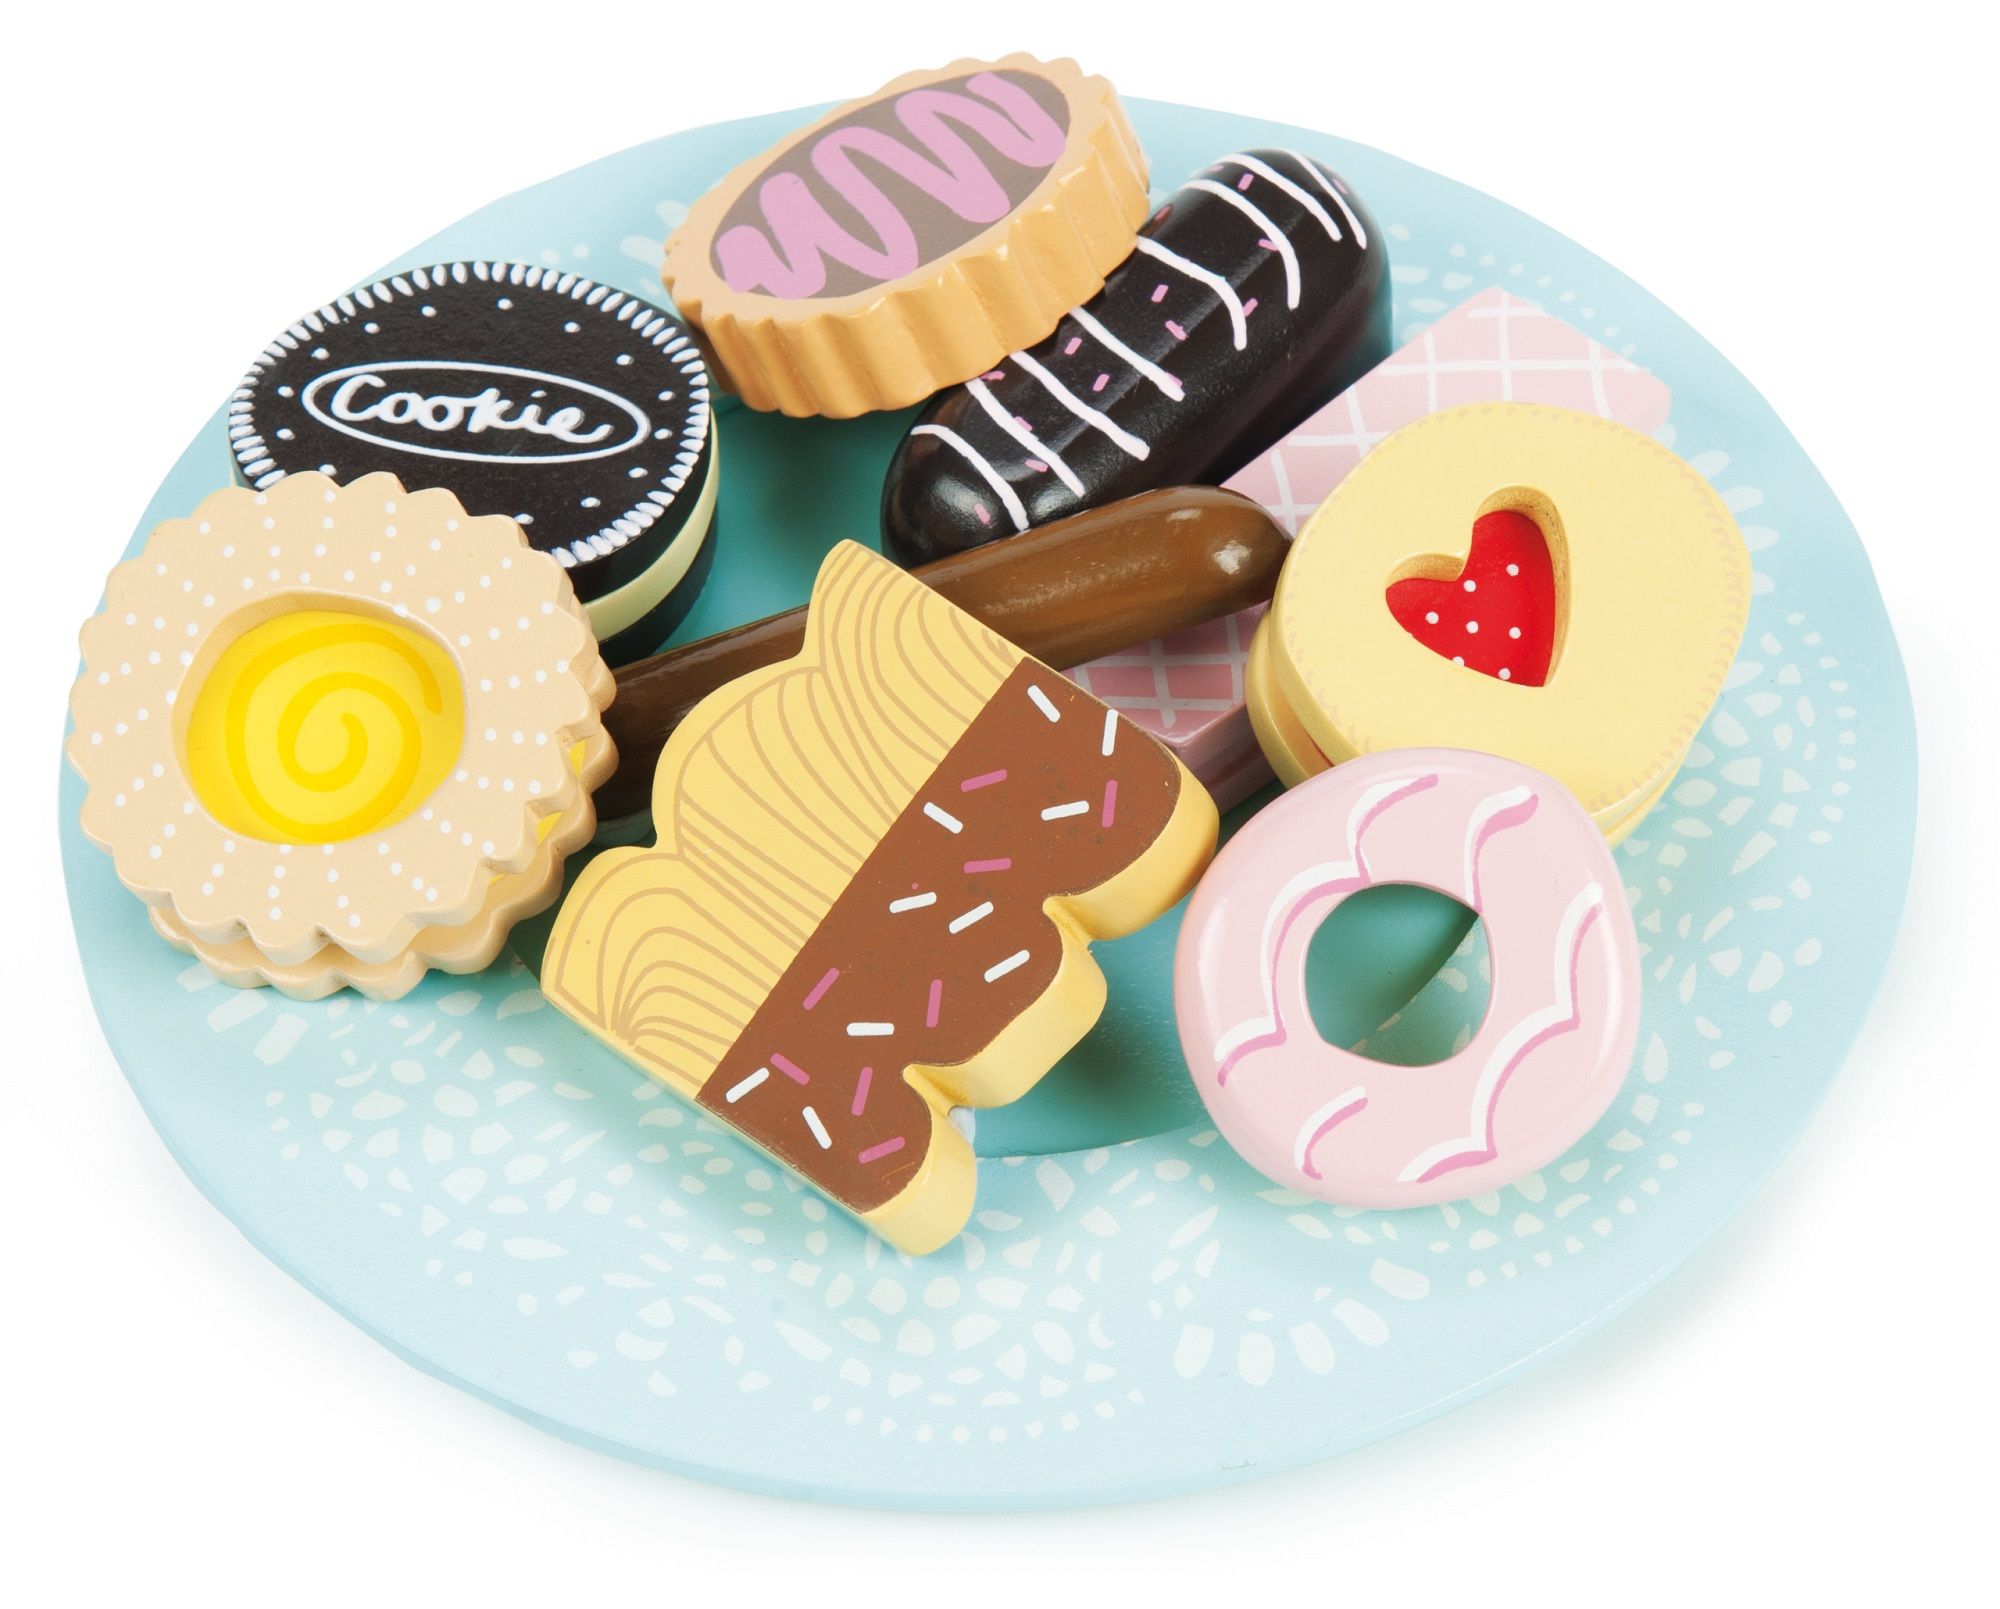 Le Toy Van Honeybake Wooden Biscuit & Plate Set